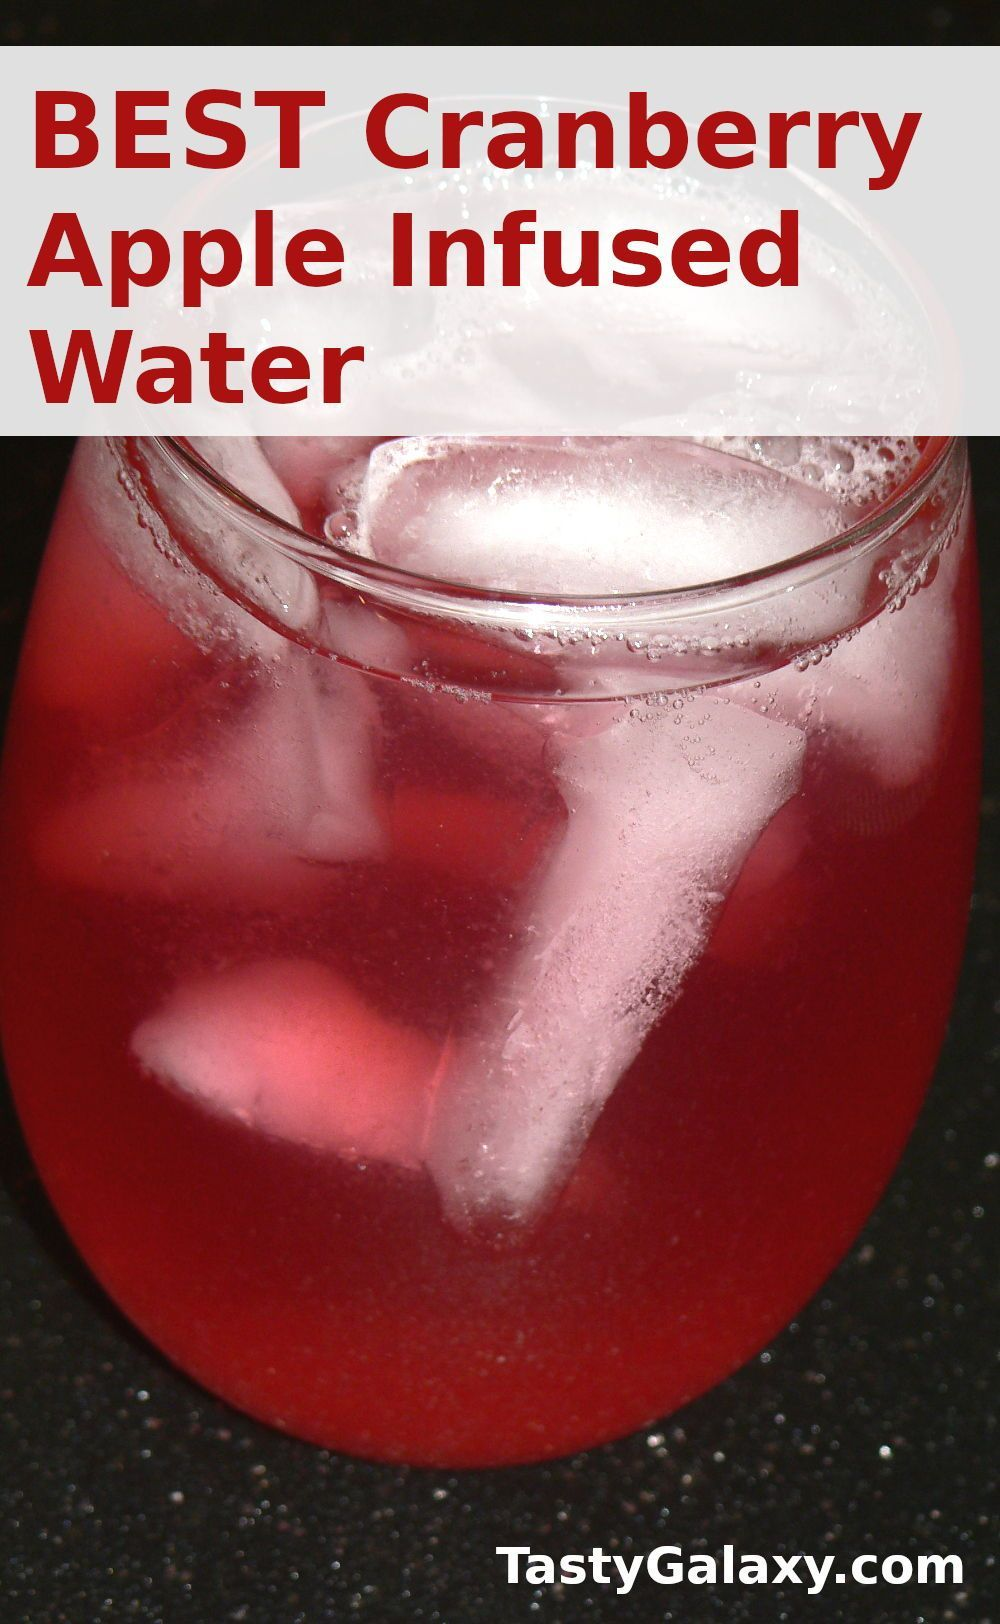 Instant Pot Cranberry Apple Infused Water Recipe Recipe In 2020 Infused Water Recipes Water Recipes Unique Recipes